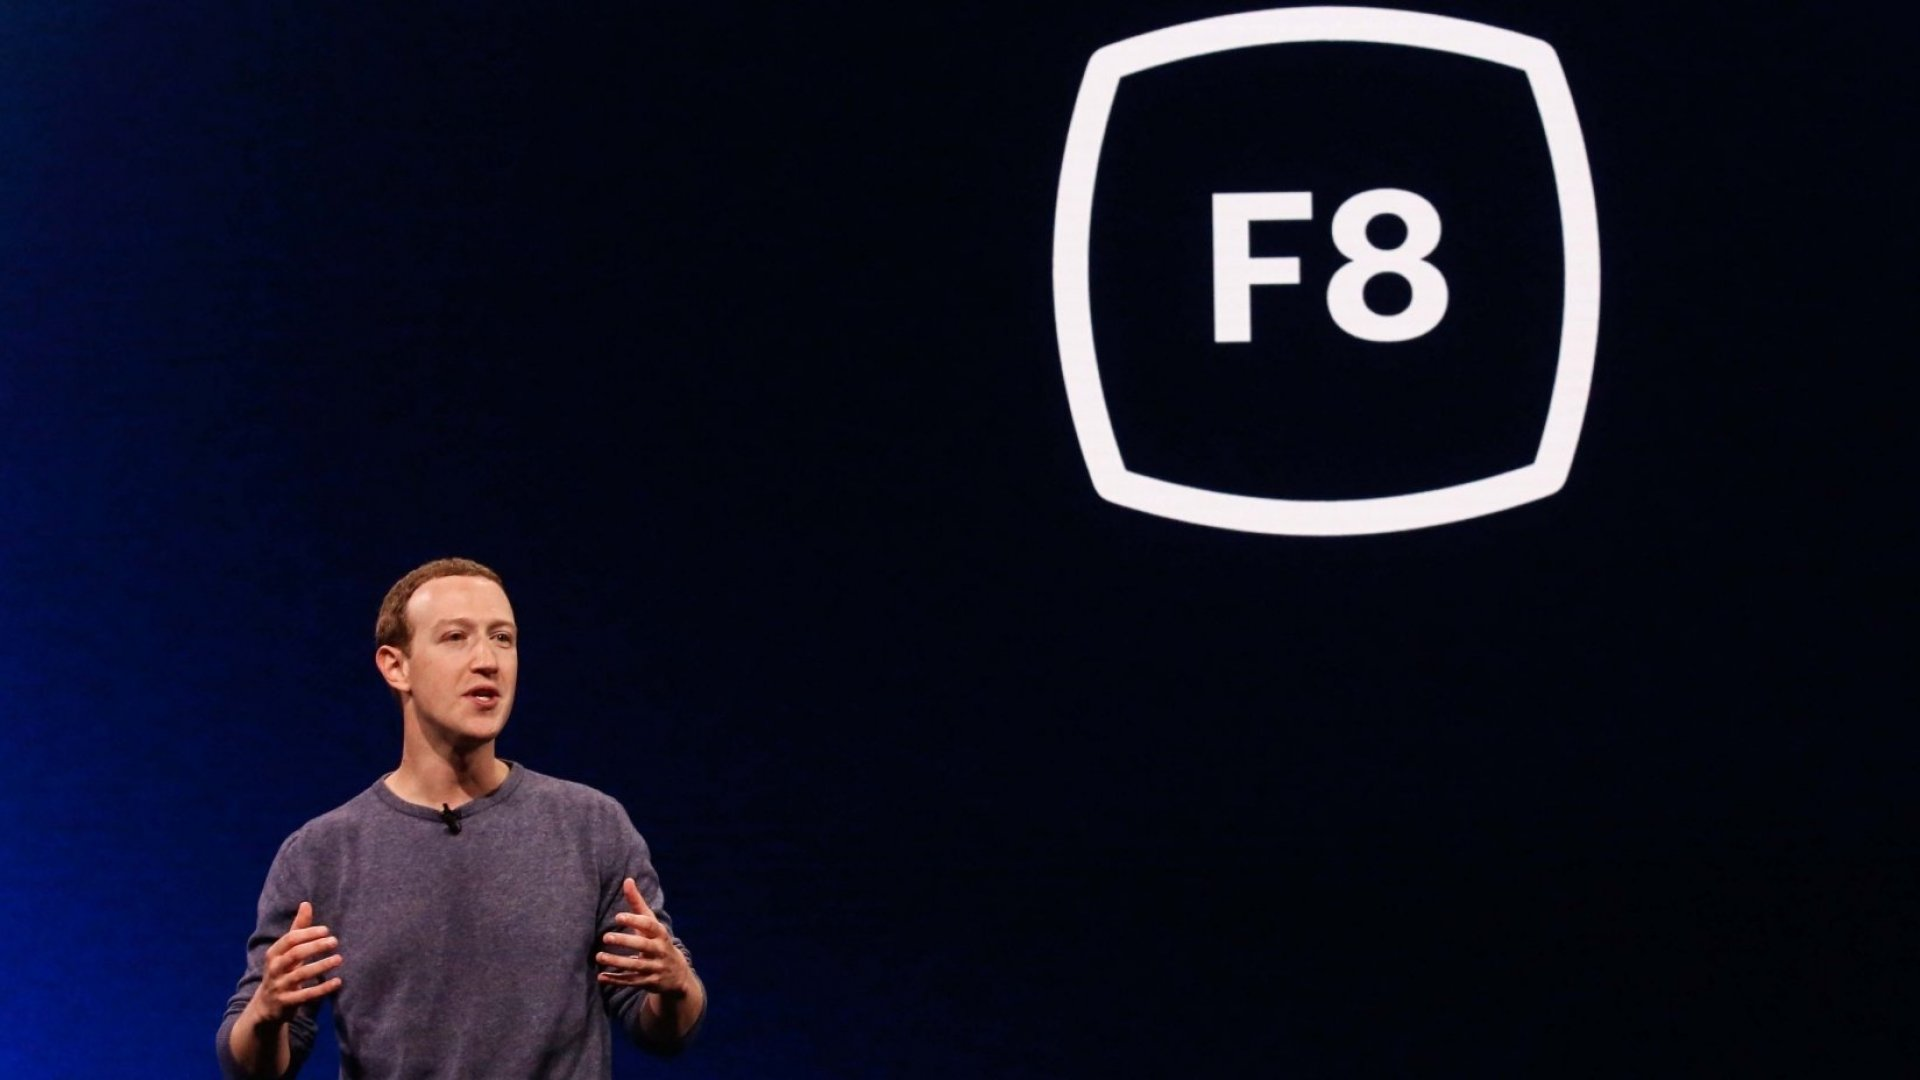 Facebook Canceled F8 Over Coronavirus Fears. Which Major Tech Conference Is Next?